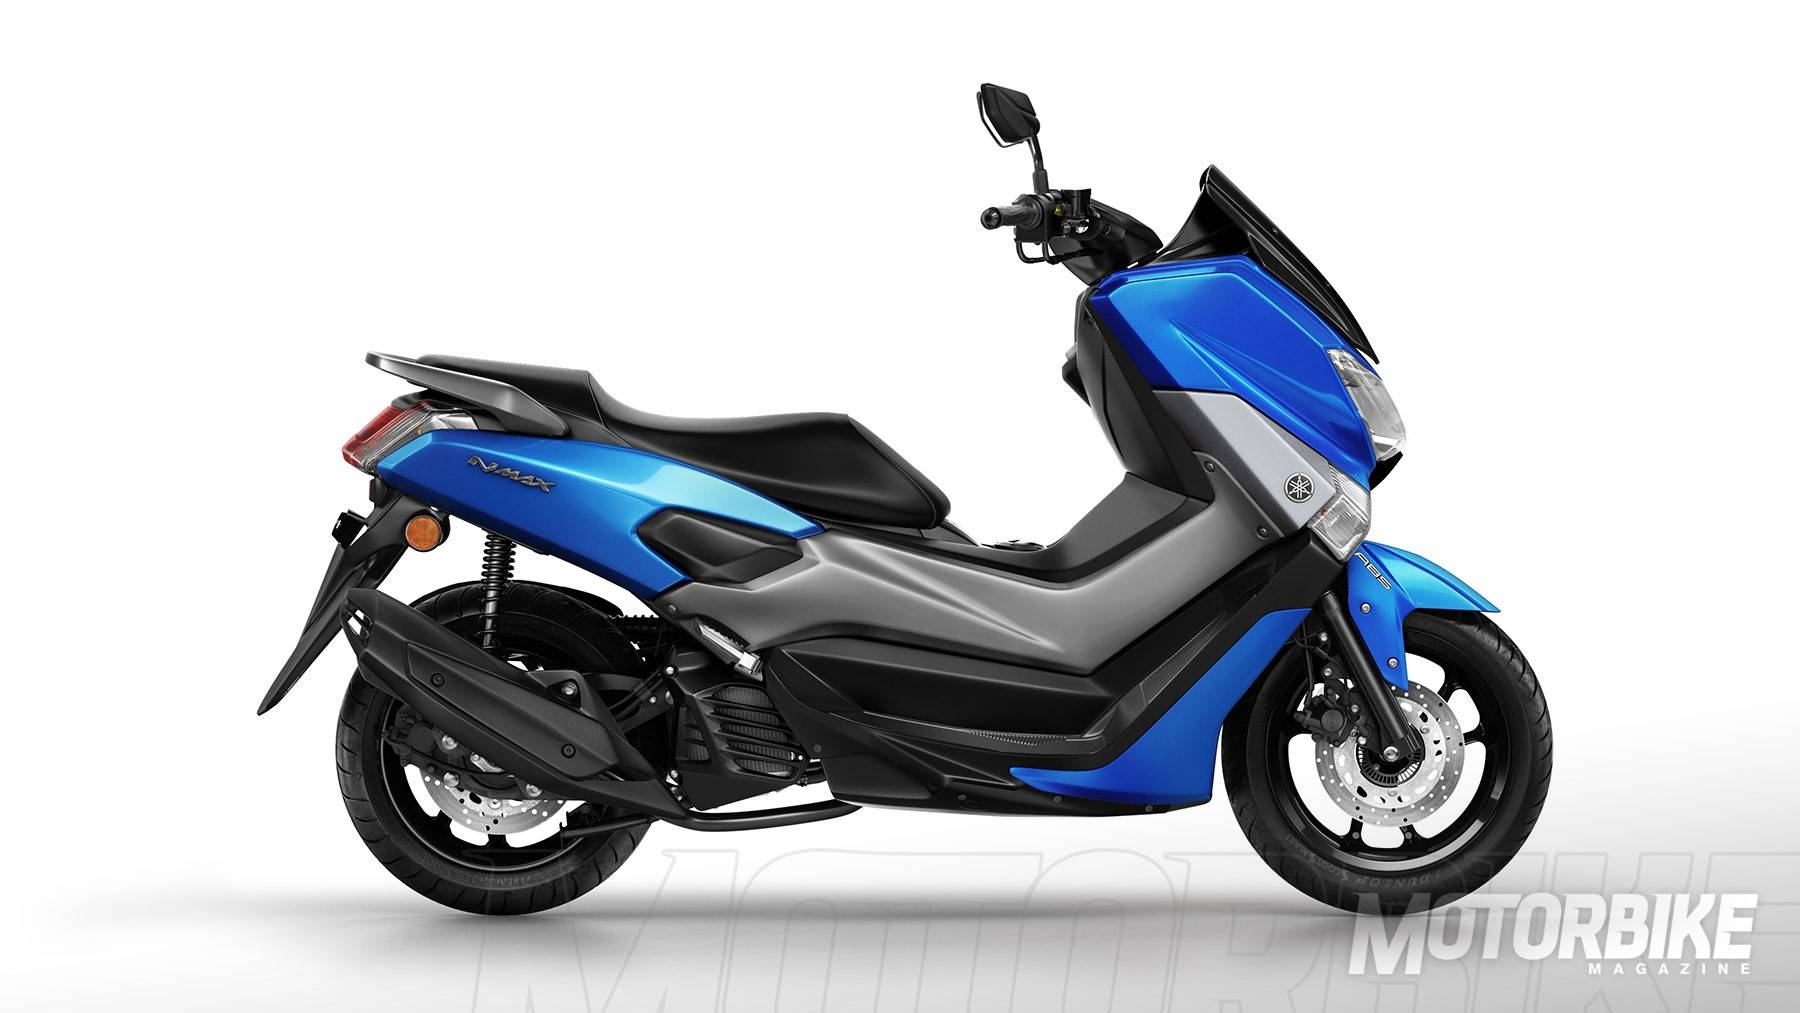 yamaha nmax 125 2018 precio fotos ficha t cnica y motos rivales. Black Bedroom Furniture Sets. Home Design Ideas